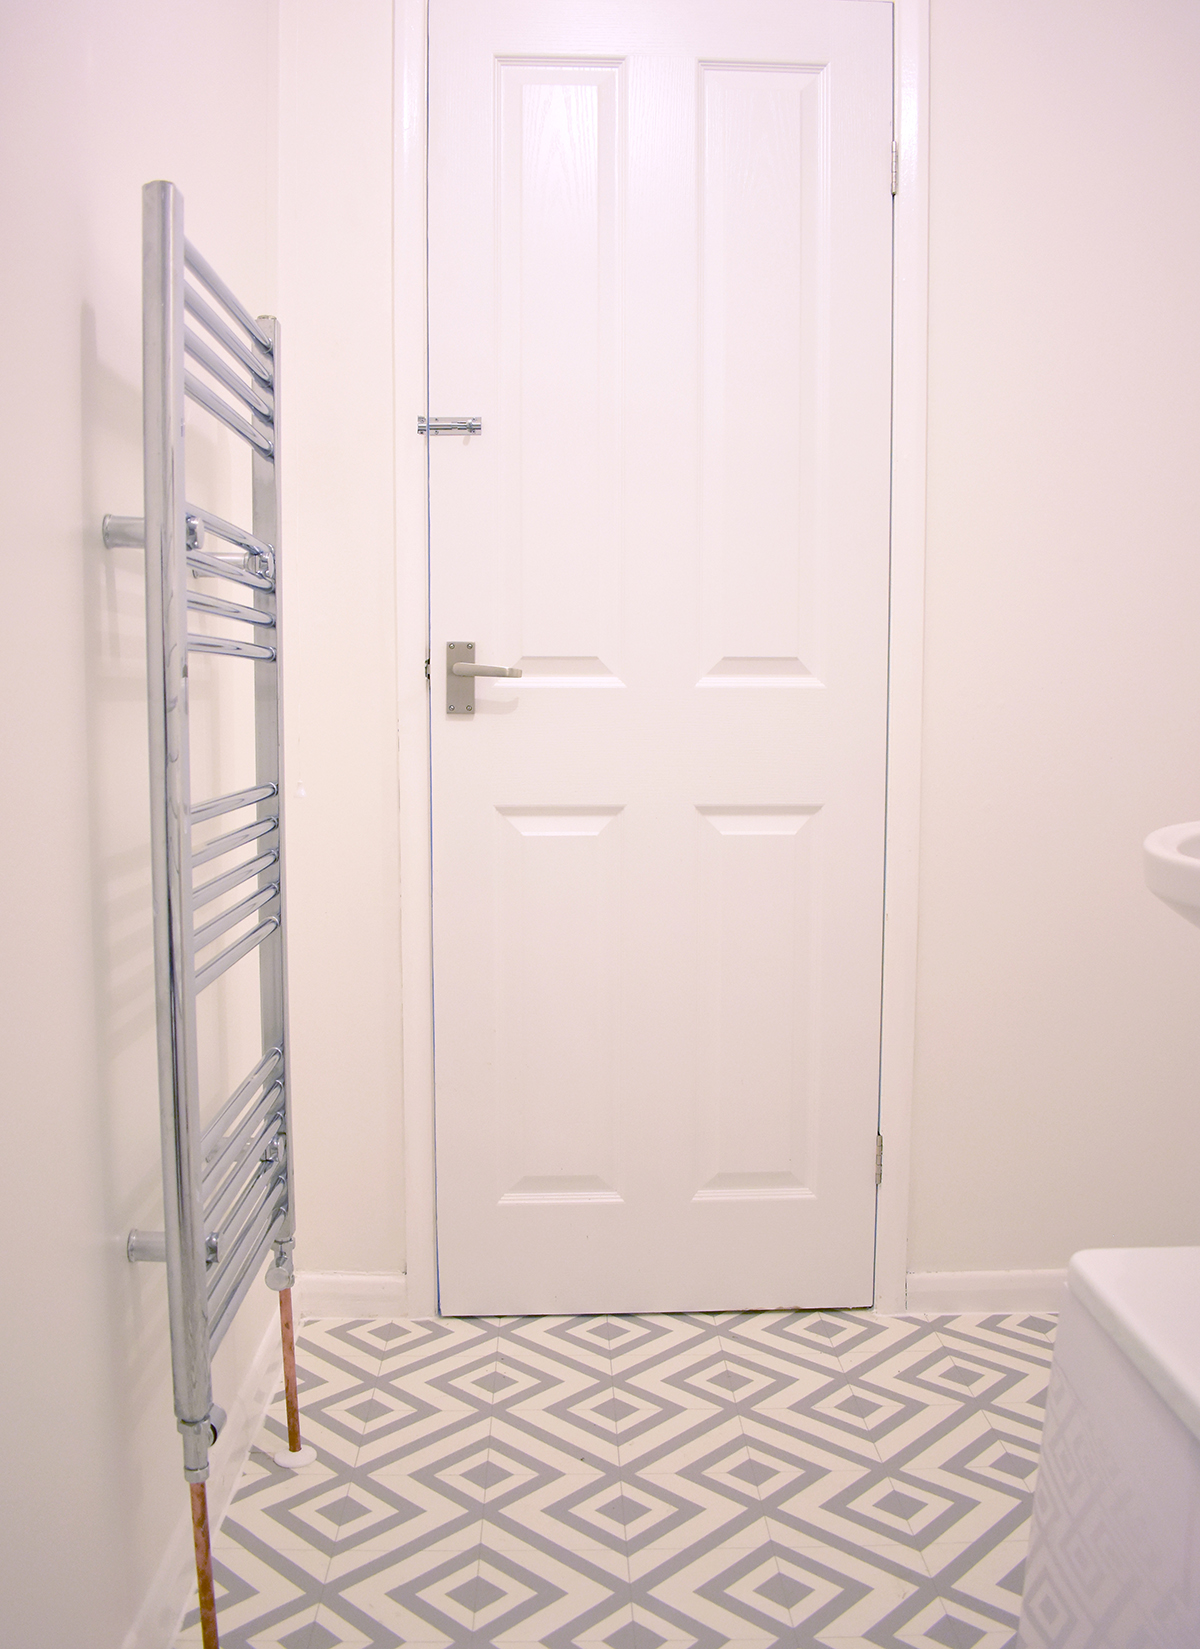 The towel rail and copper piping finish the bathroom renovation nicely